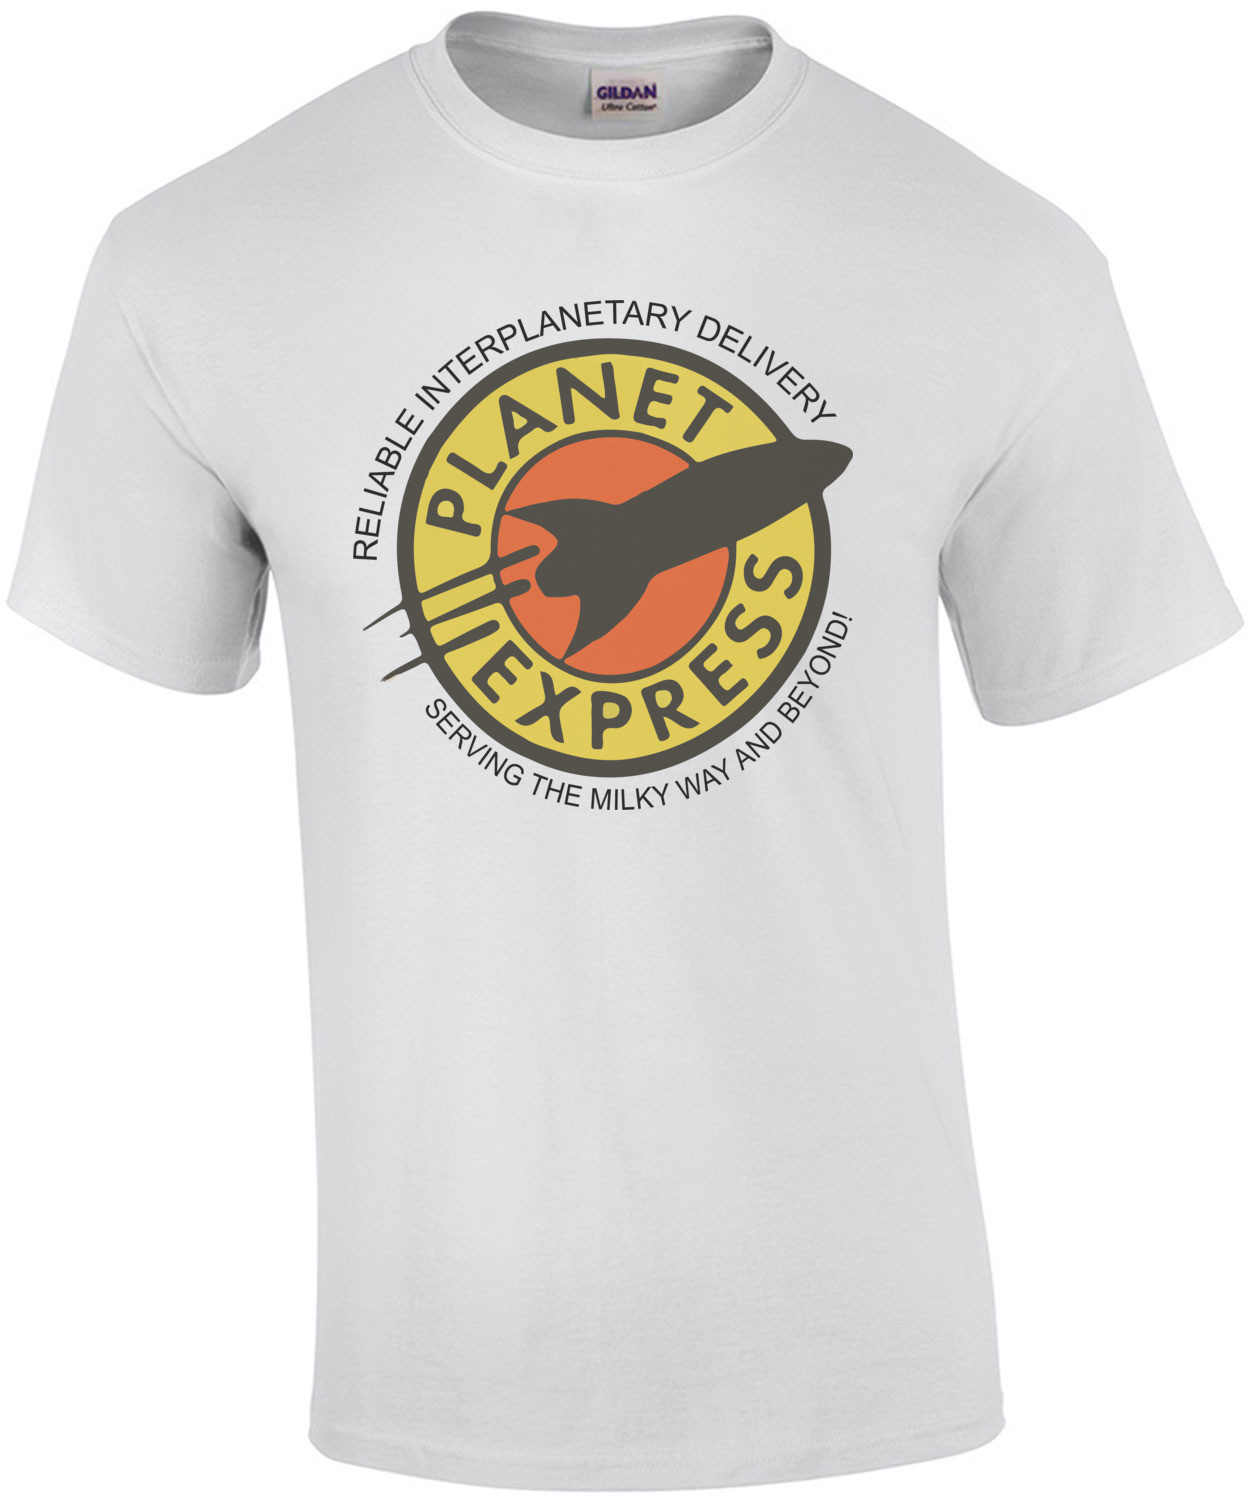 Planet Express - Reliable Interplanetory Delivery Serving The Milky Way And Beyond! Futurama T-Shirt